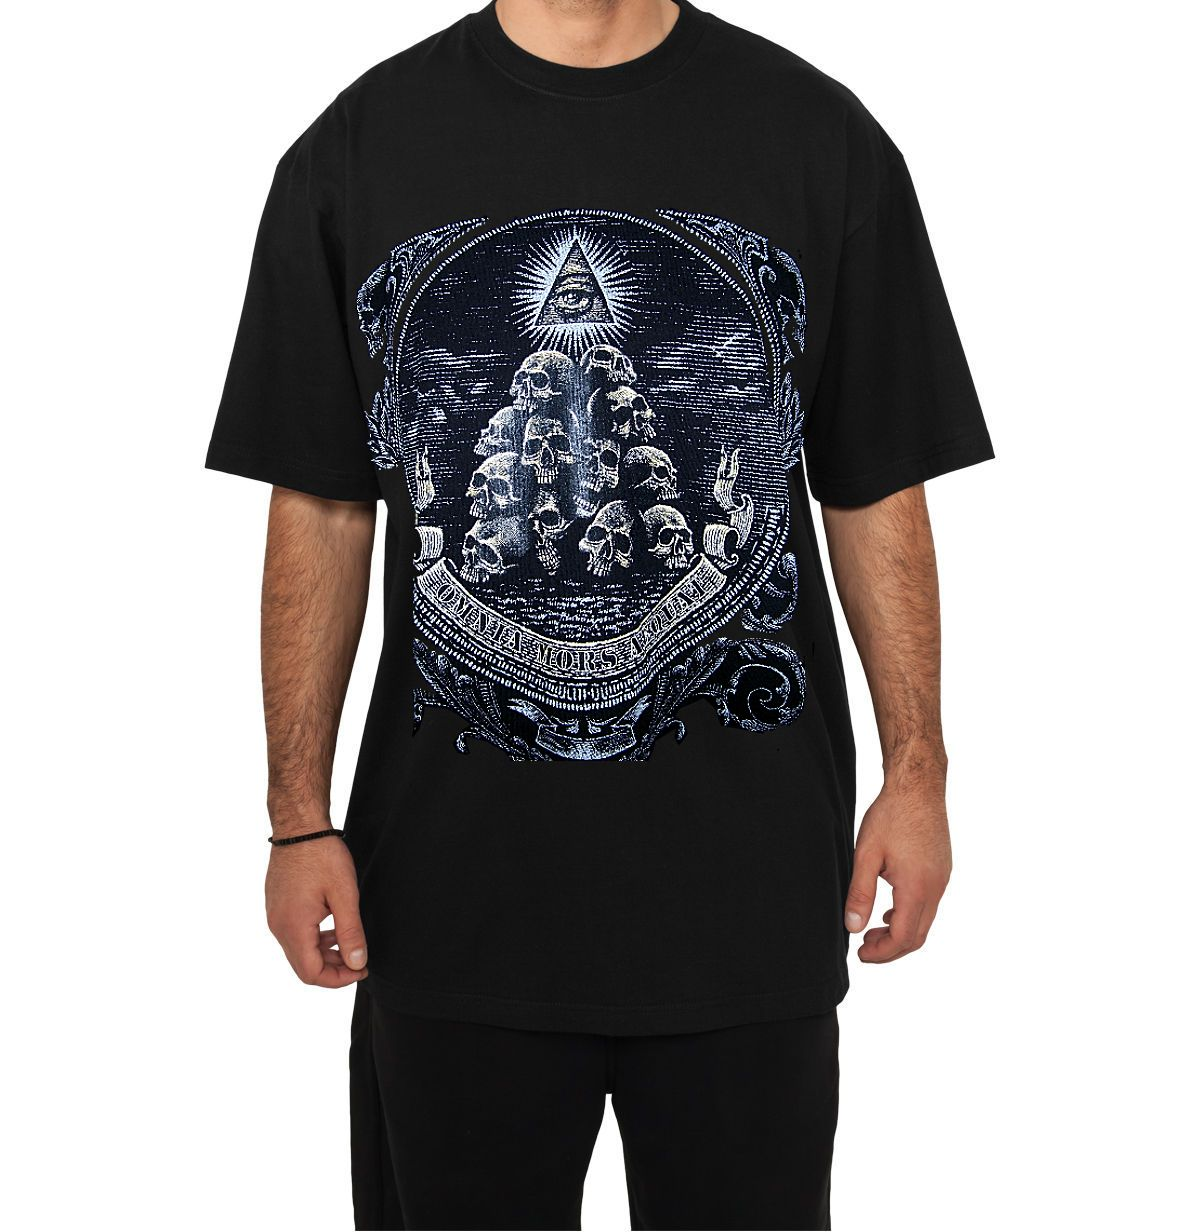 Storenvy coupon: Urban - All Seeing Eye, Death Equals All Things Black T-Shirt